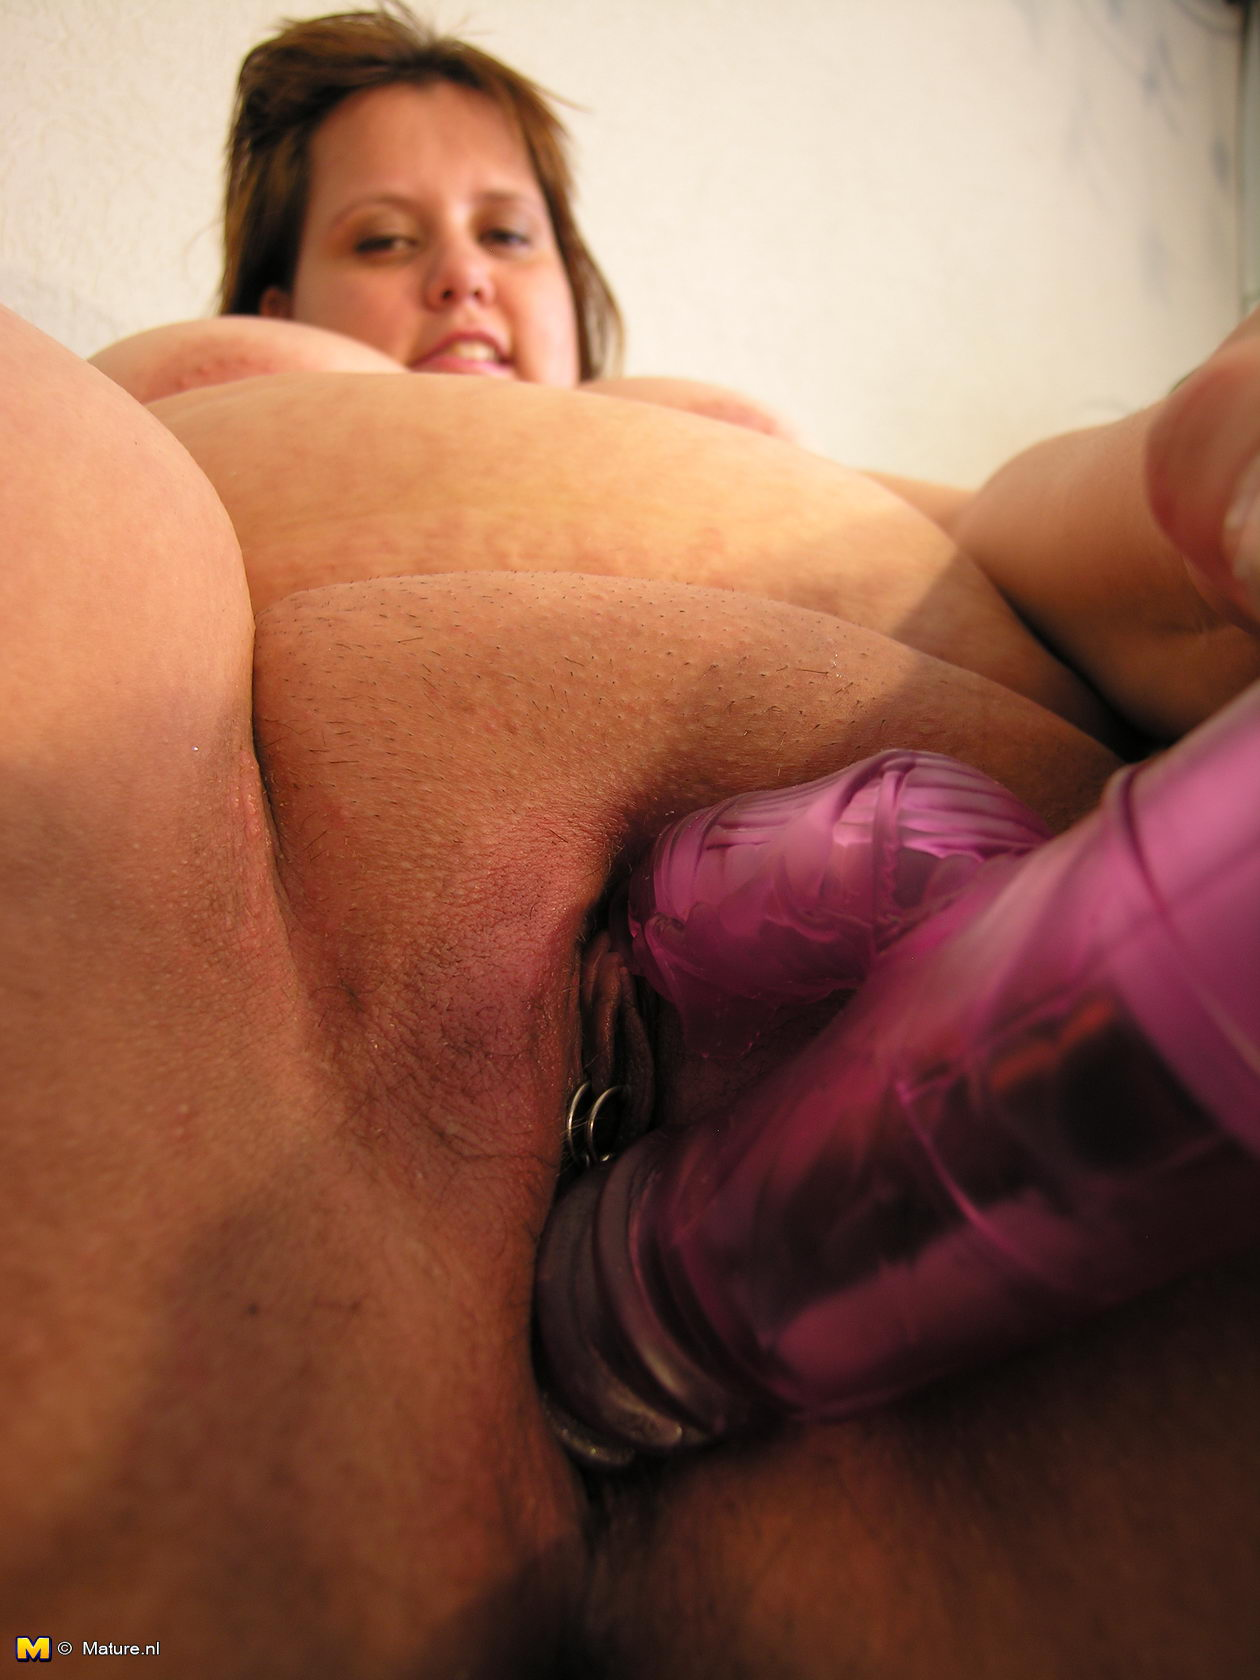 Fat Chunky Butt Housewife Toys Her Sloppy Gaping Holes From Mature Nl